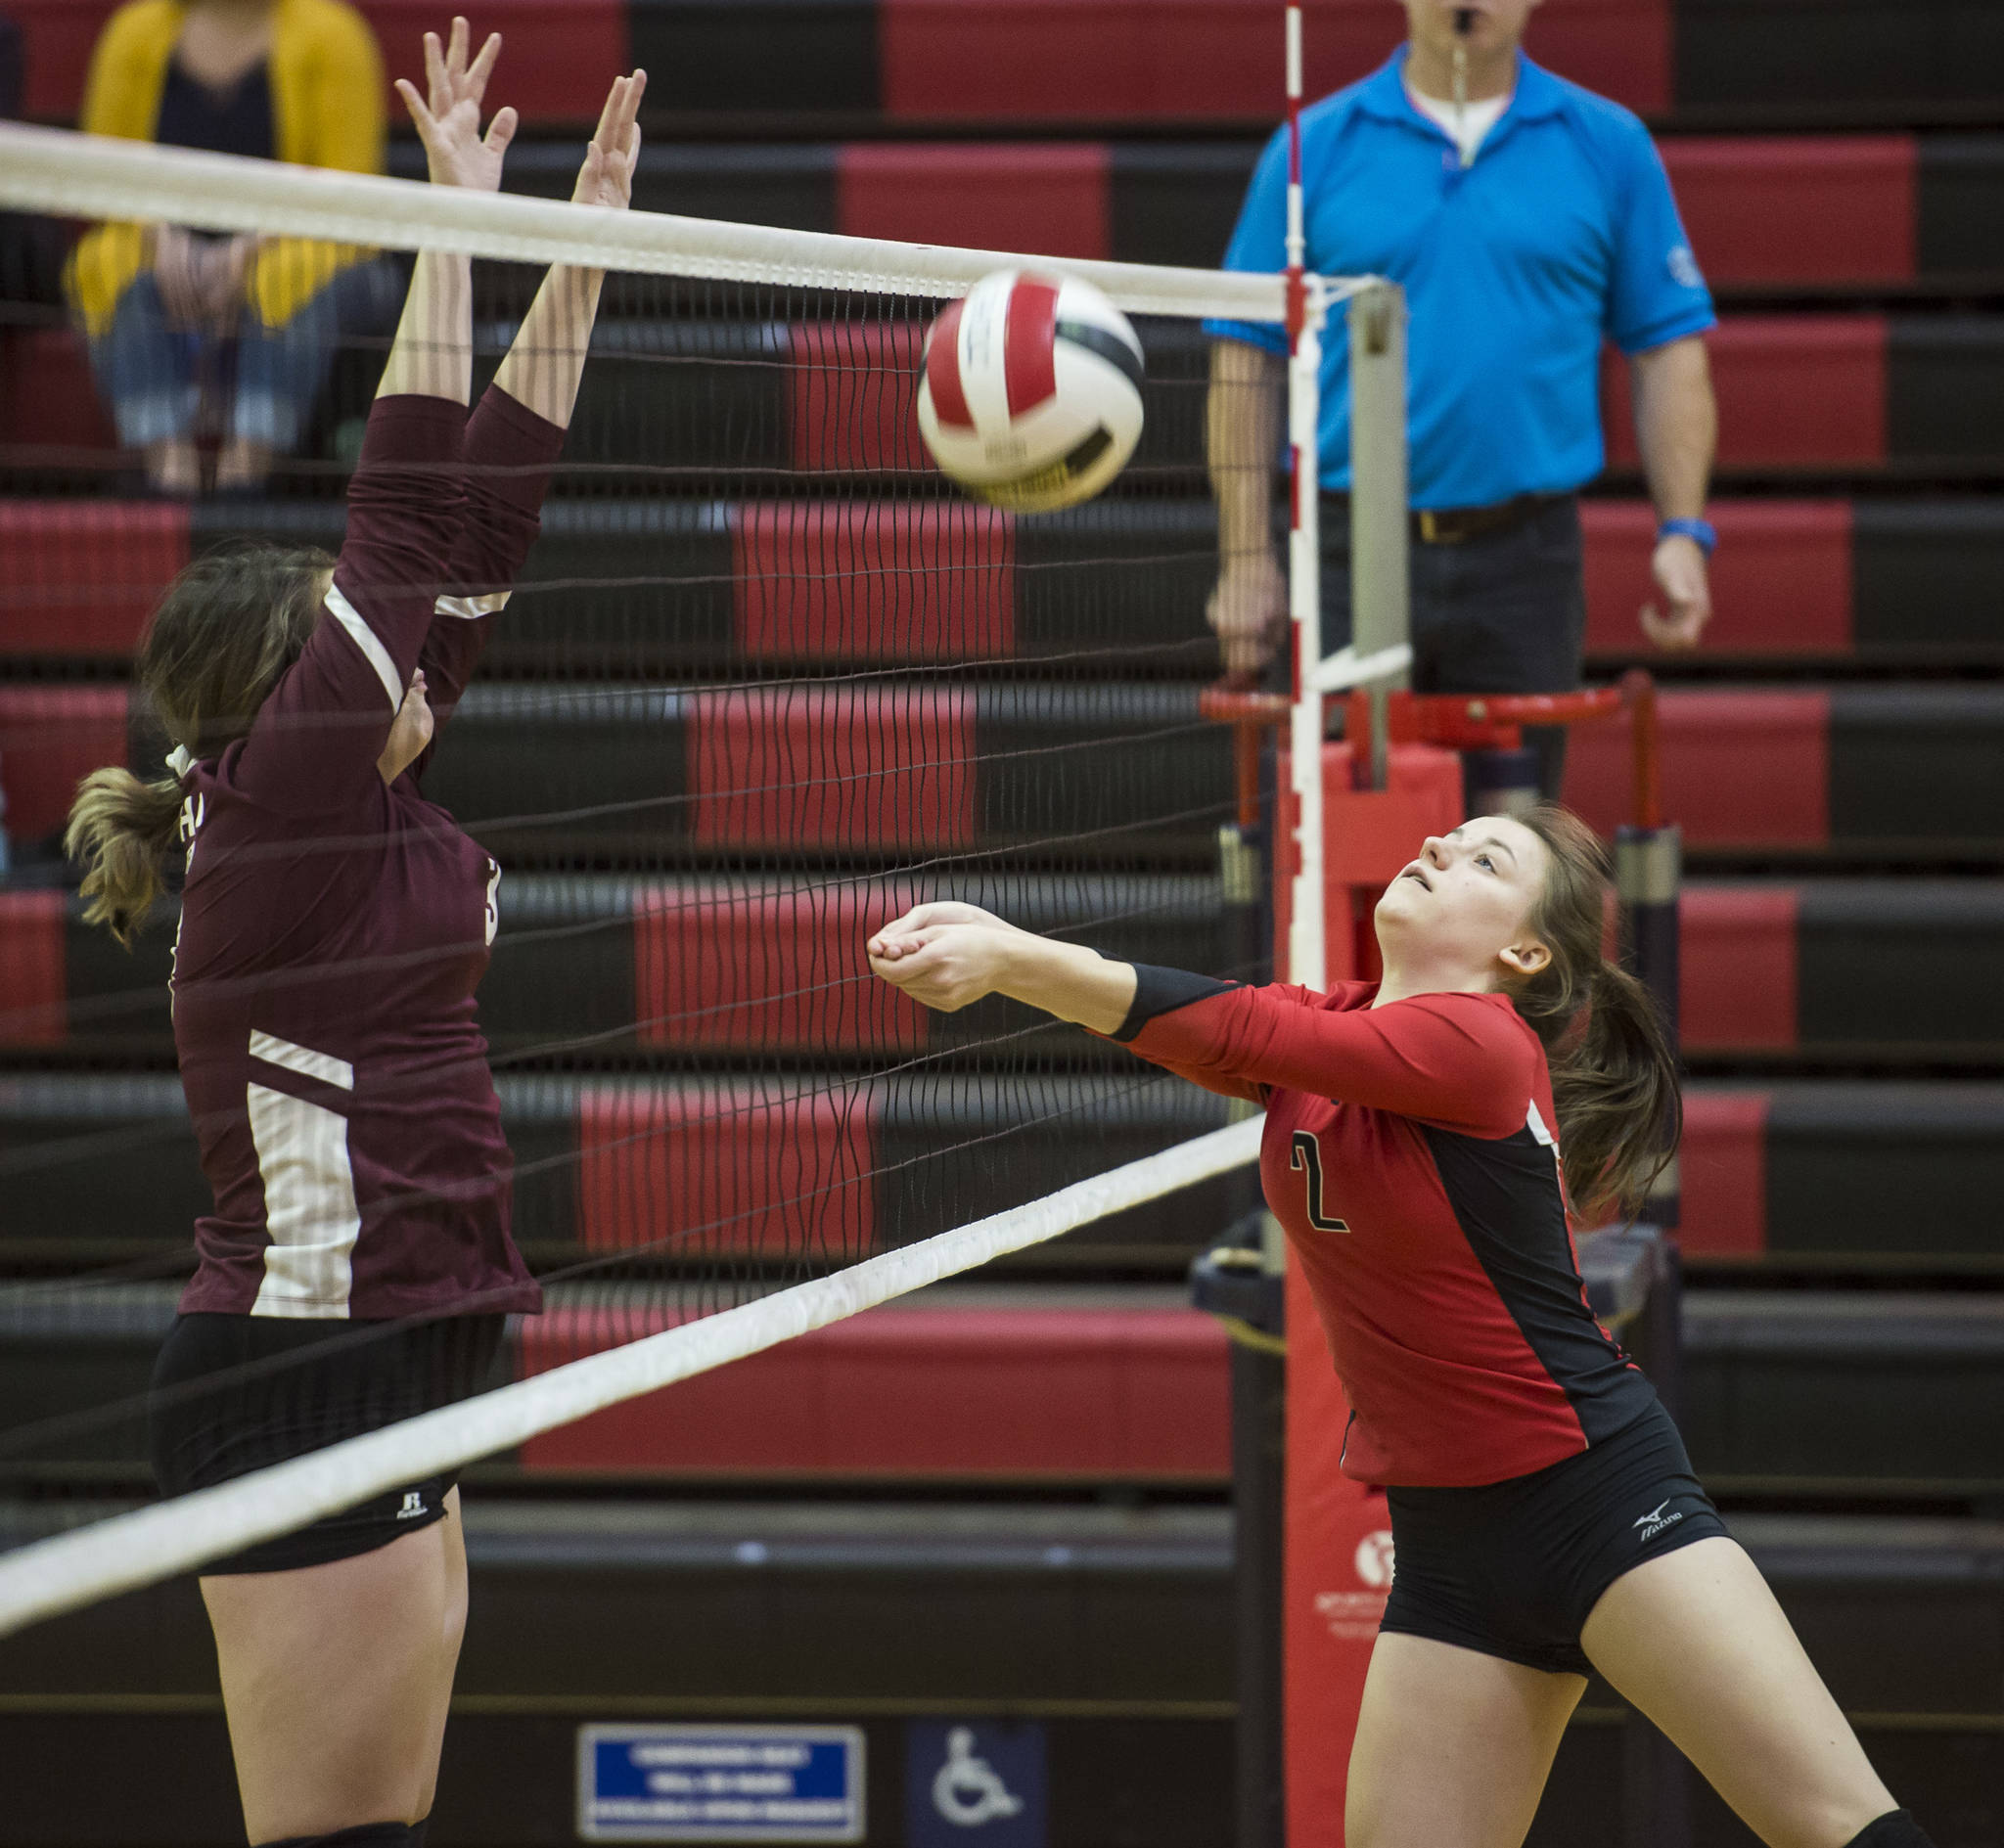 Juneau-Douglas' Kiana Potter bumps the ball up againt Ketchikan in the first round of the Region V Volleyball Championships at JDHS on Friday, Nov. 2, 2018. JDHS won 3-0 (25-13, 25-16, 25-16). (Michael Penn | Juneau Empire)